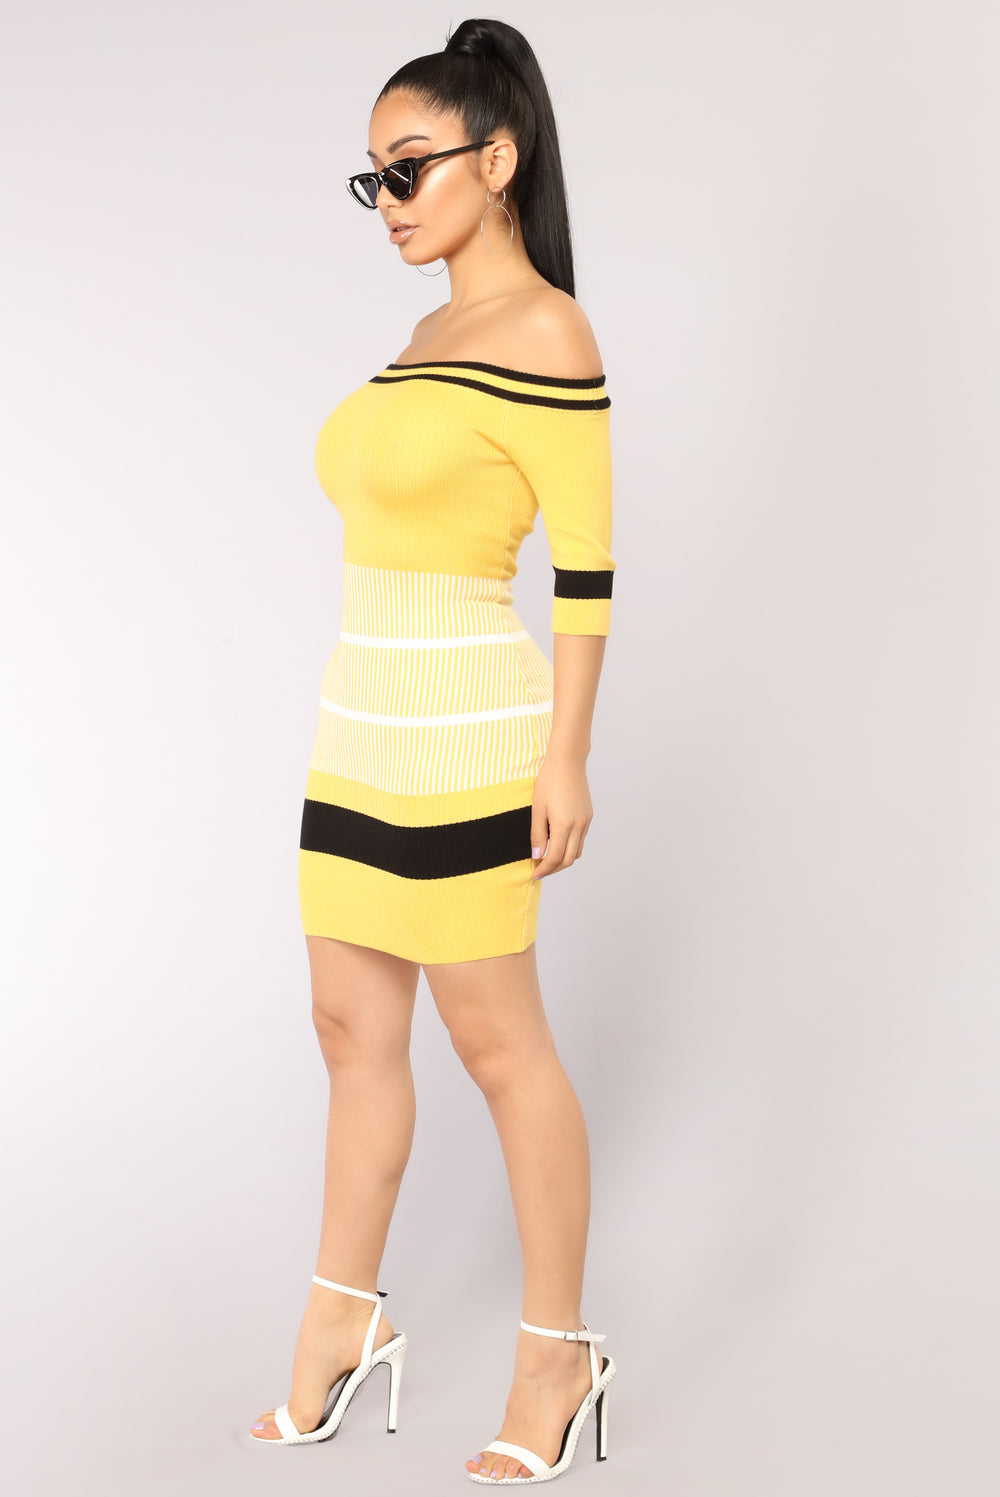 Bumble Bee Striped Dress - Yellow